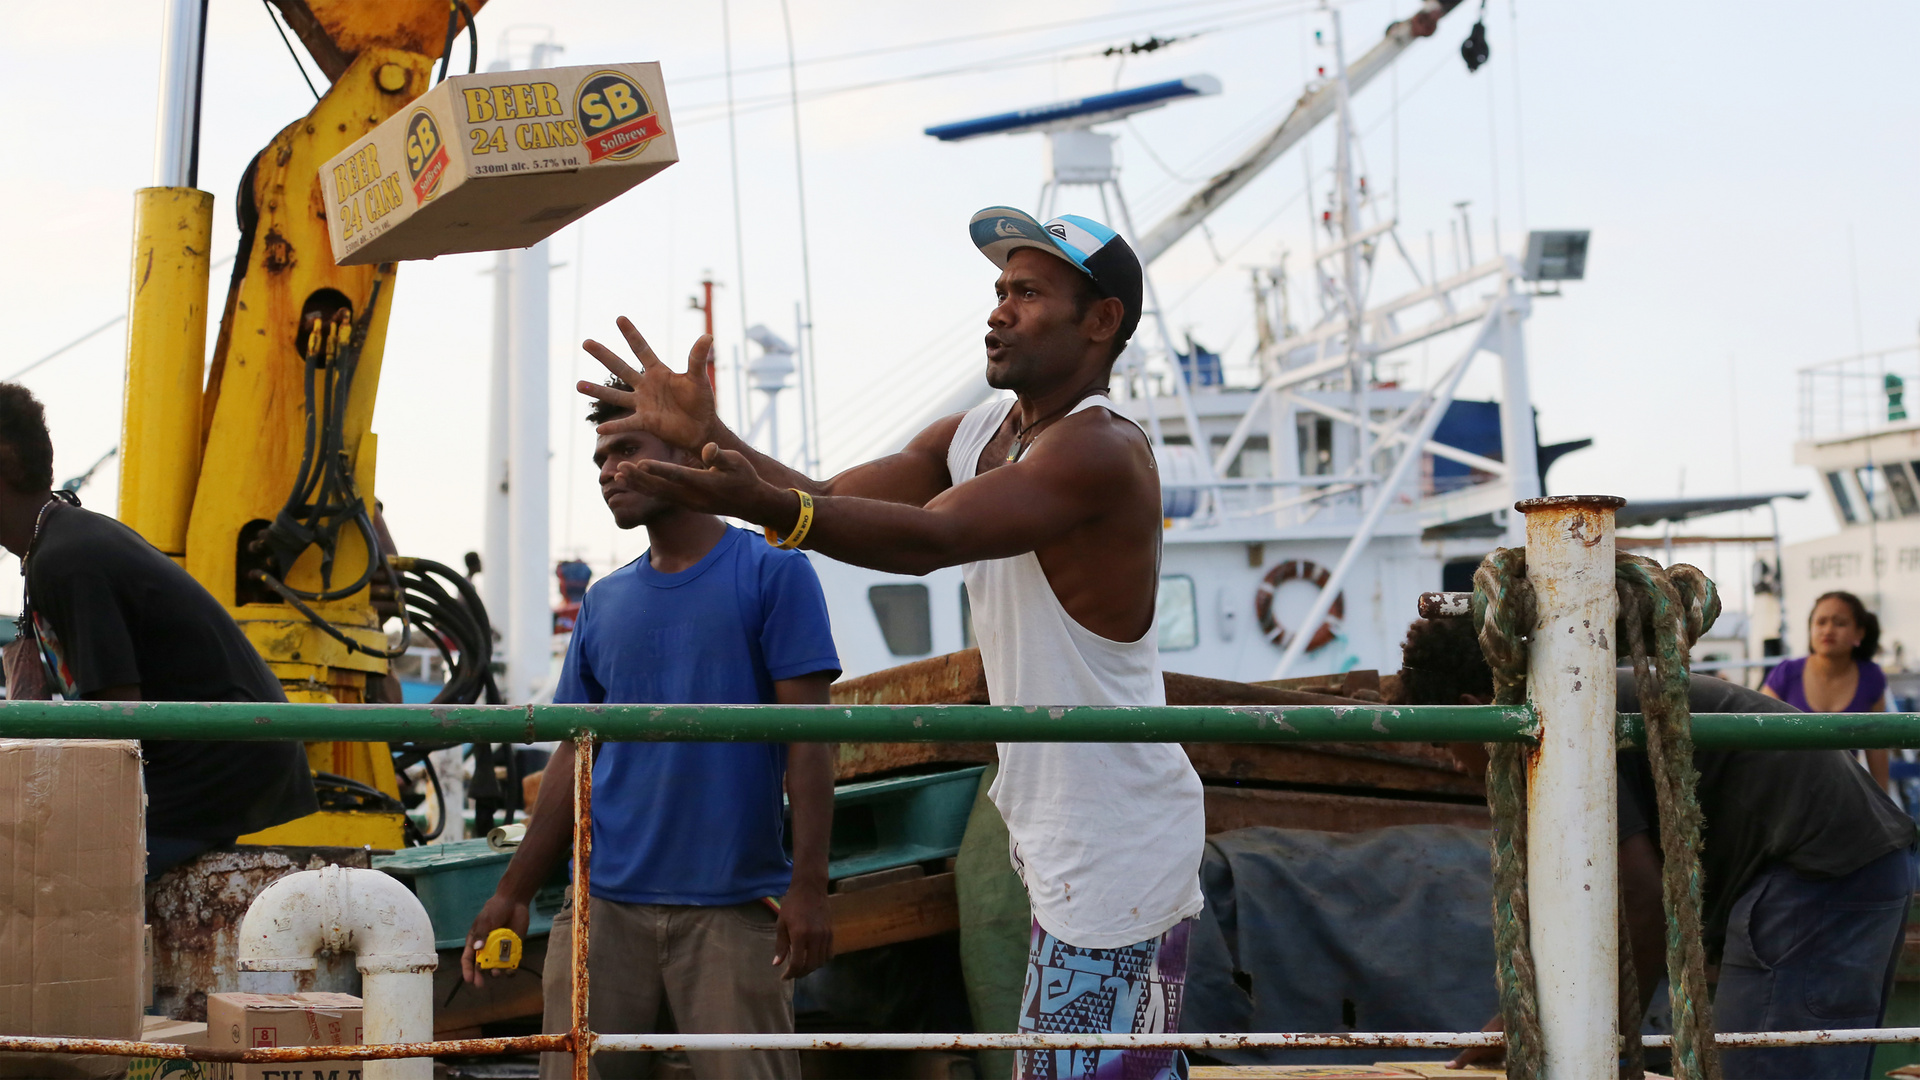 Loading Supplies for the Outer Islands III, Honiara, Solomon Islands / SB